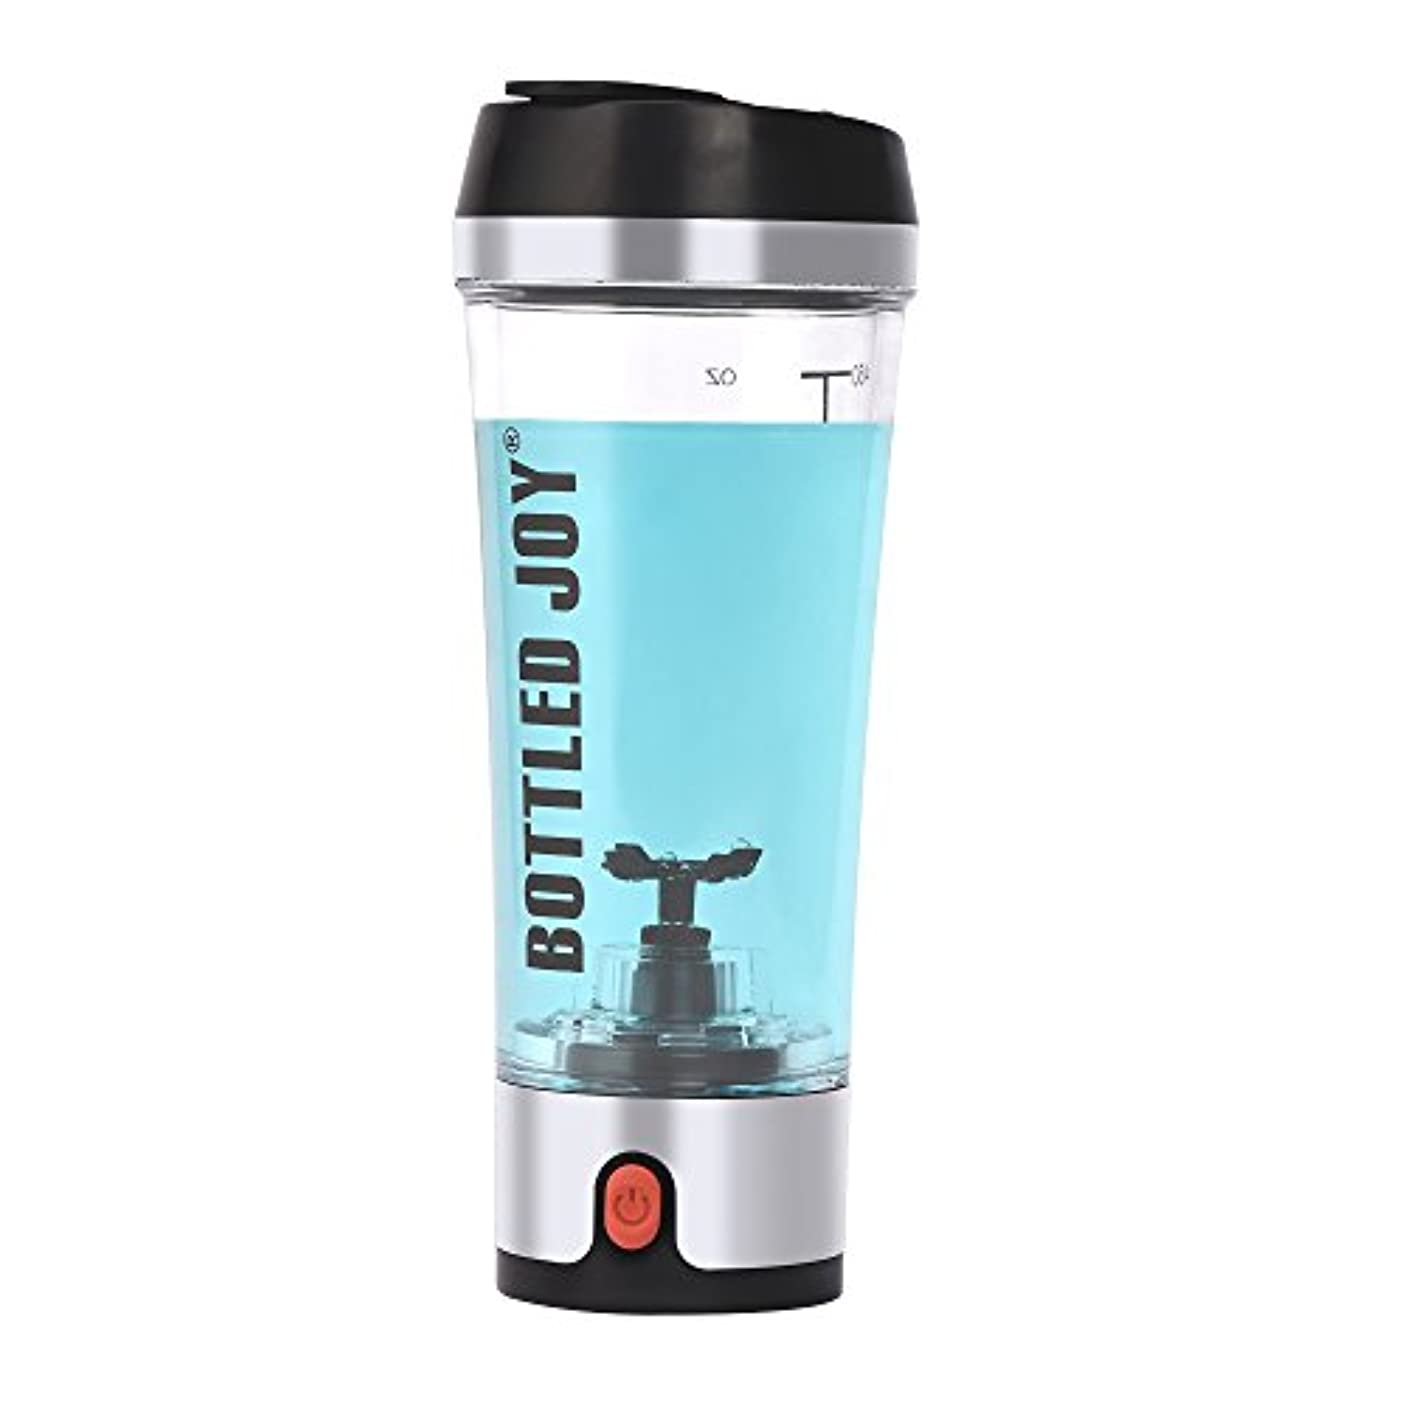 実現可能性クレタ日光Bottled Joy Electric Shaker Bottle、USB Rechargeable Protein Shaker、high-torque Stirring Blenderミキサーのスポーツマンと女性16oz...